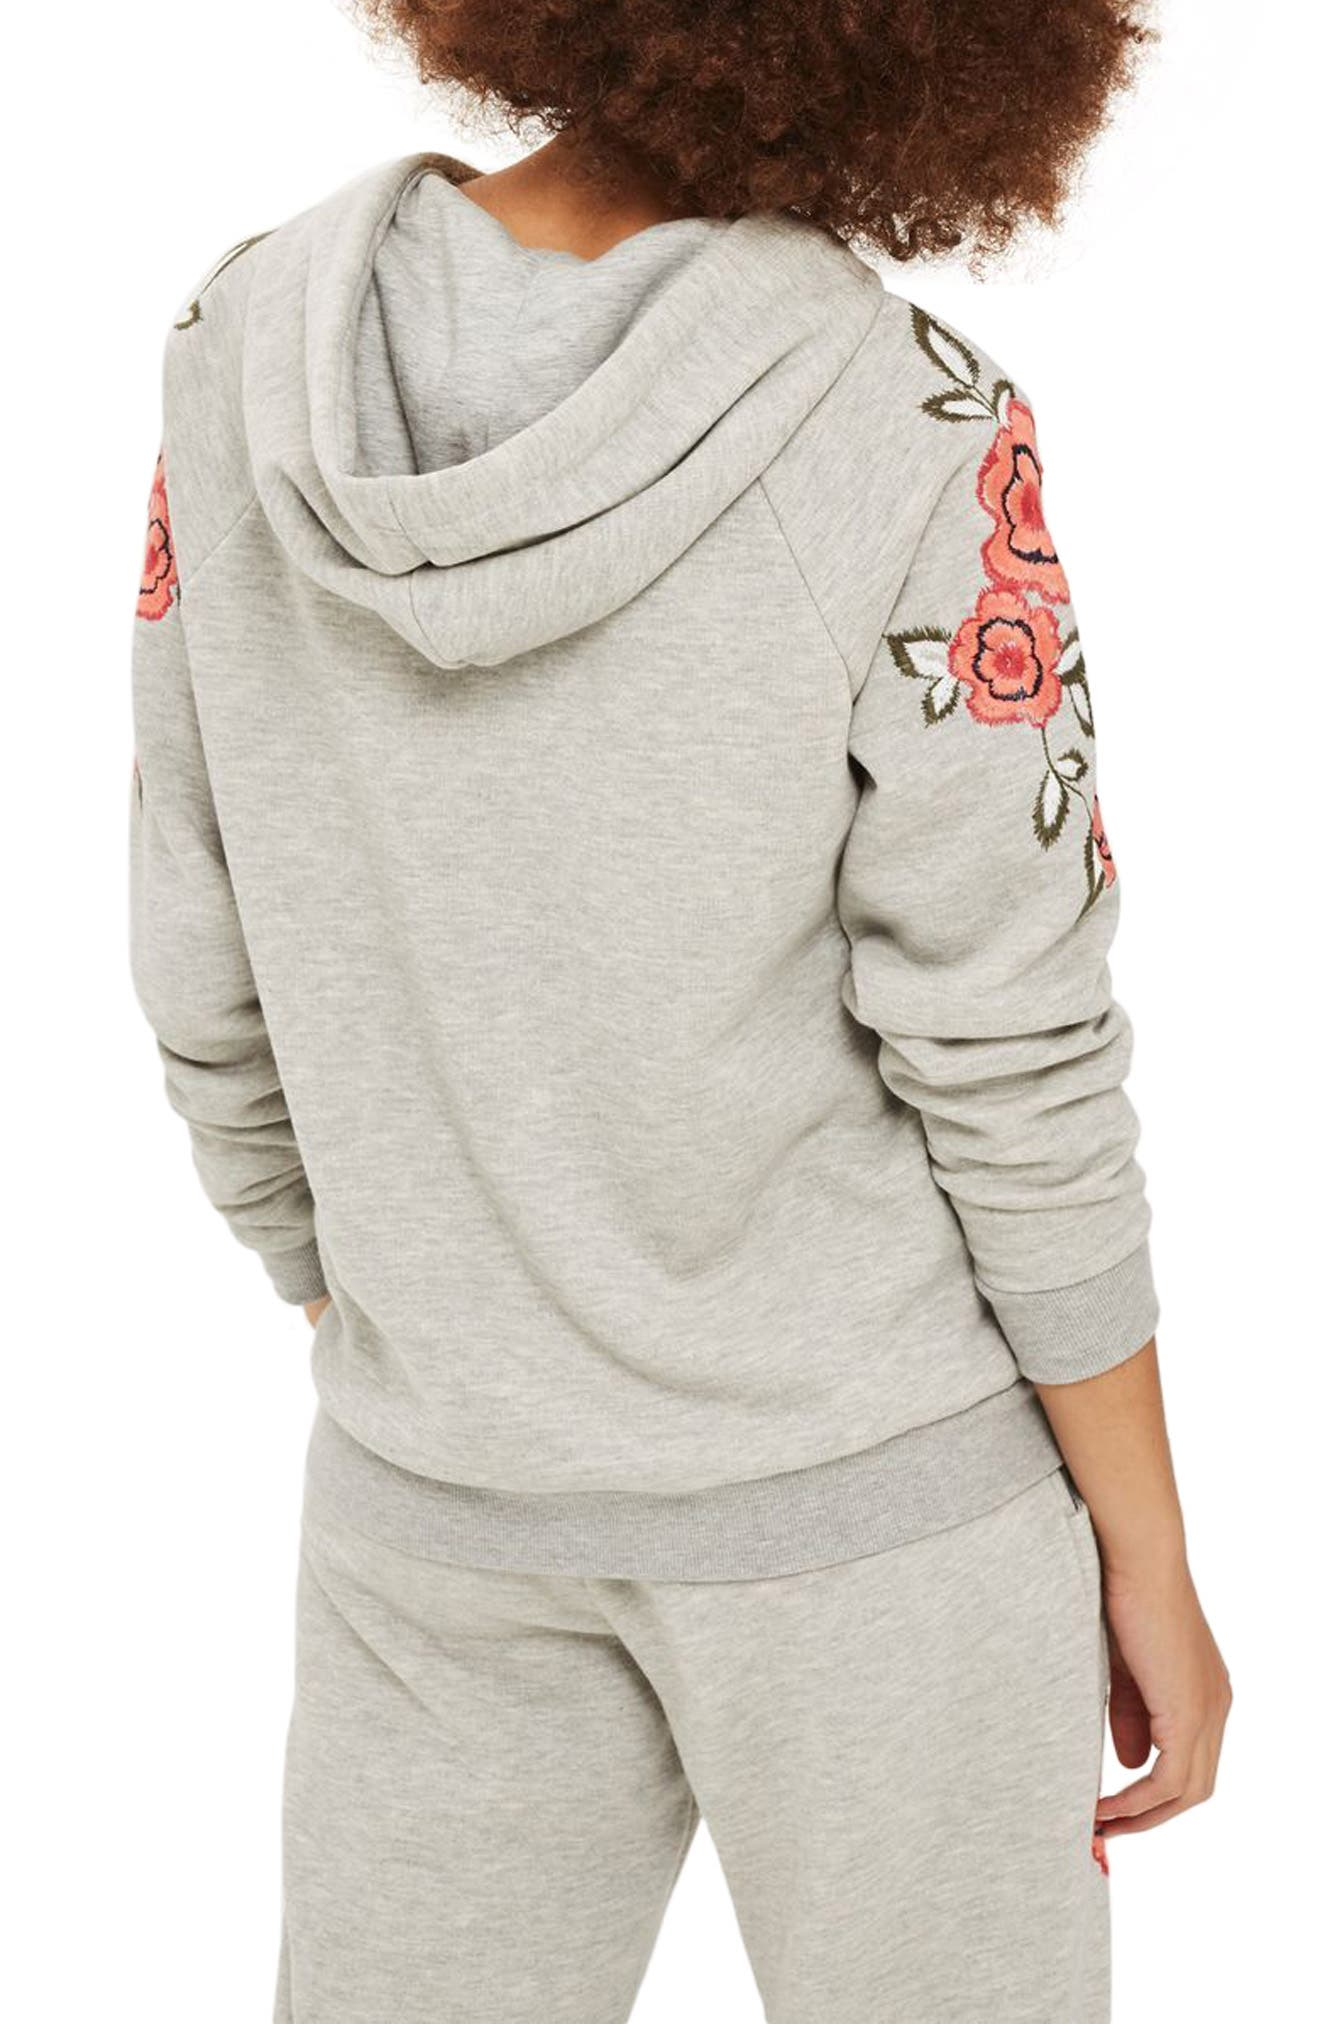 Floral Embroidered Hoodie,                             Alternate thumbnail 2, color,                             020